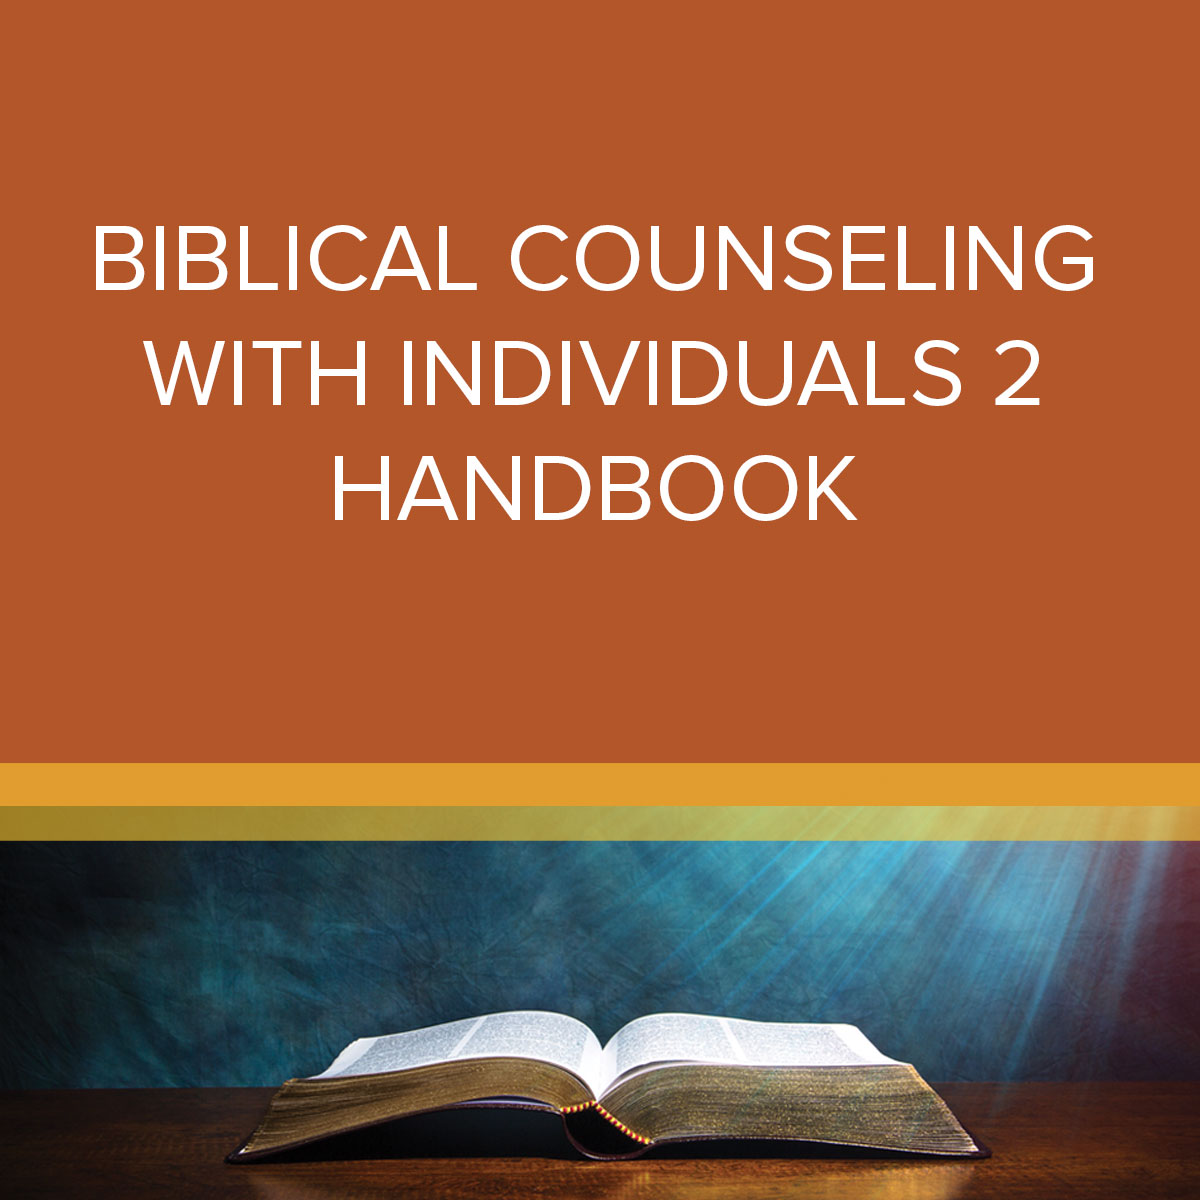 Biblical Counseling with Individuals